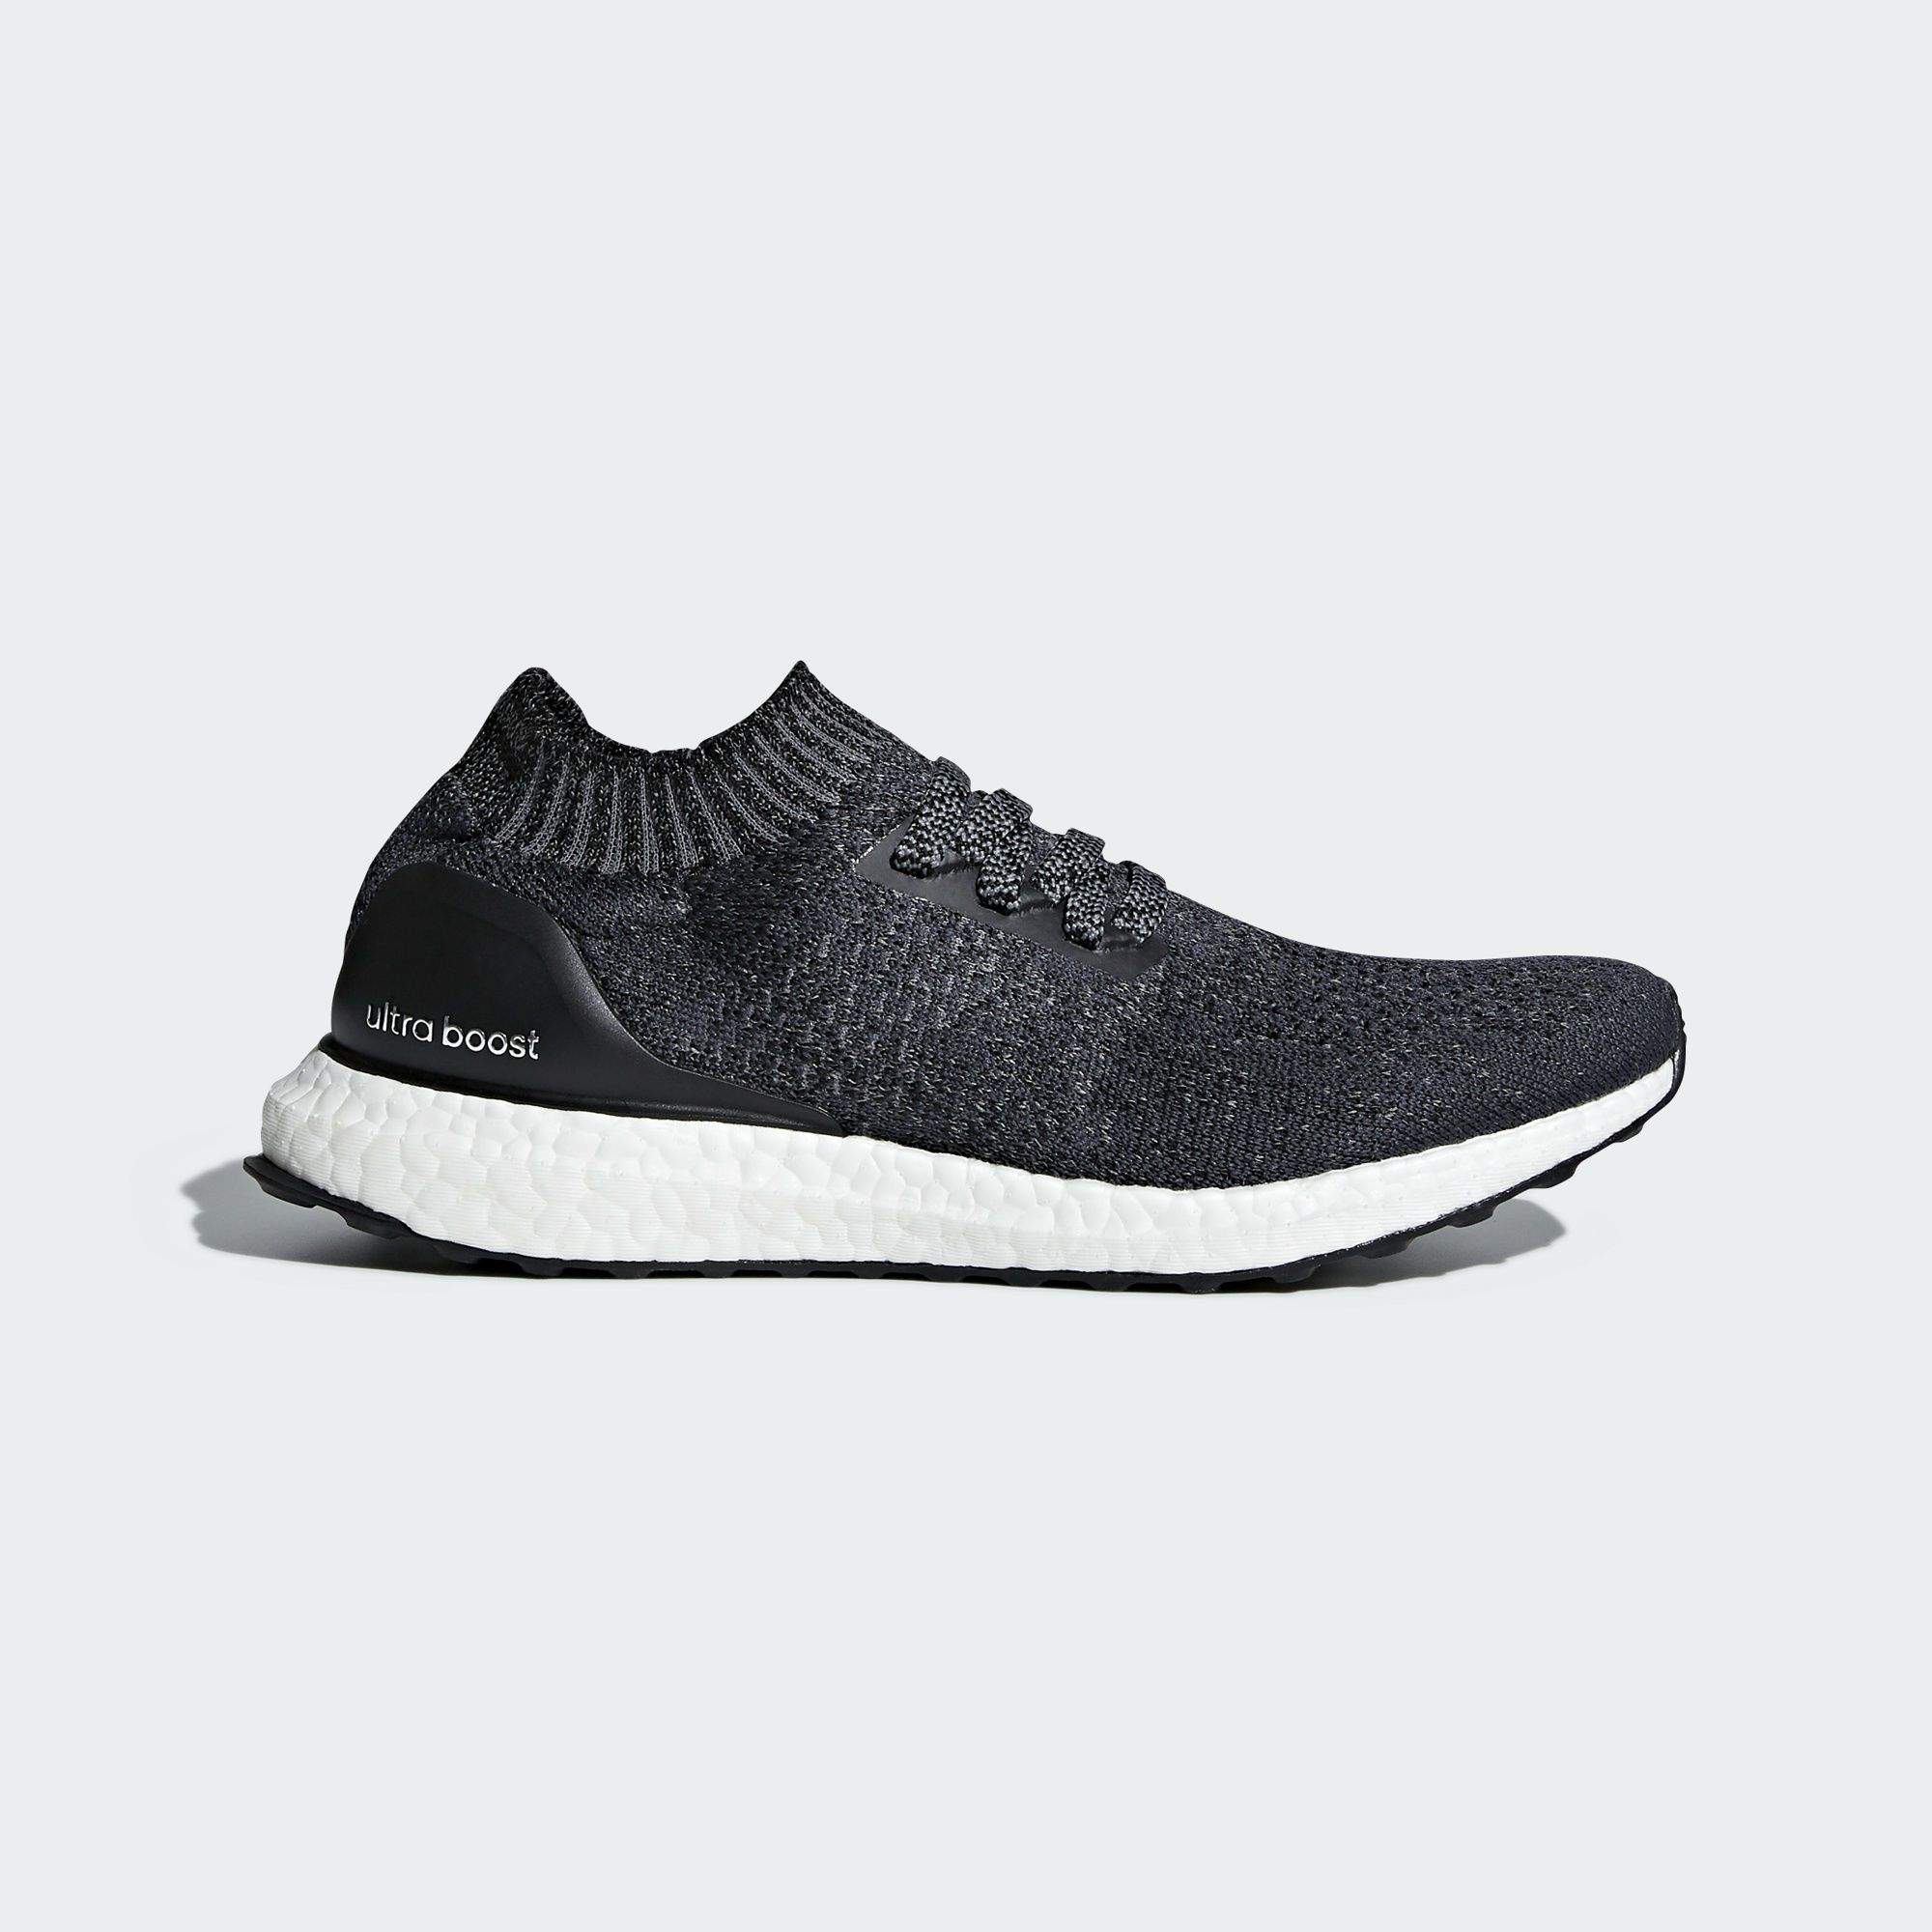 Ultraboost Uncaged Shoes Black Womens | Adidas ultra boost